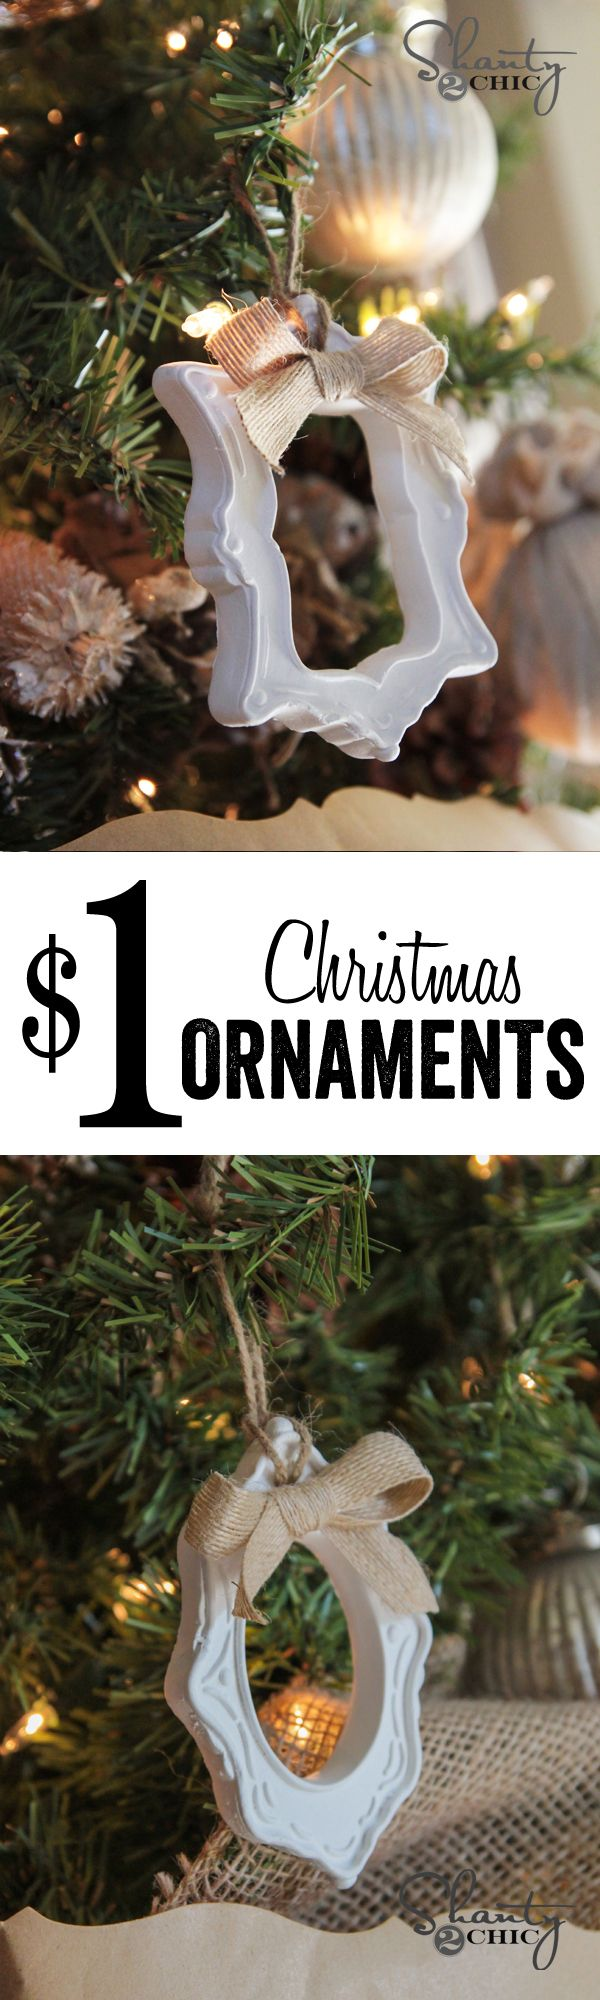 159 best Christmas Ornaments to Make images on Pinterest ...